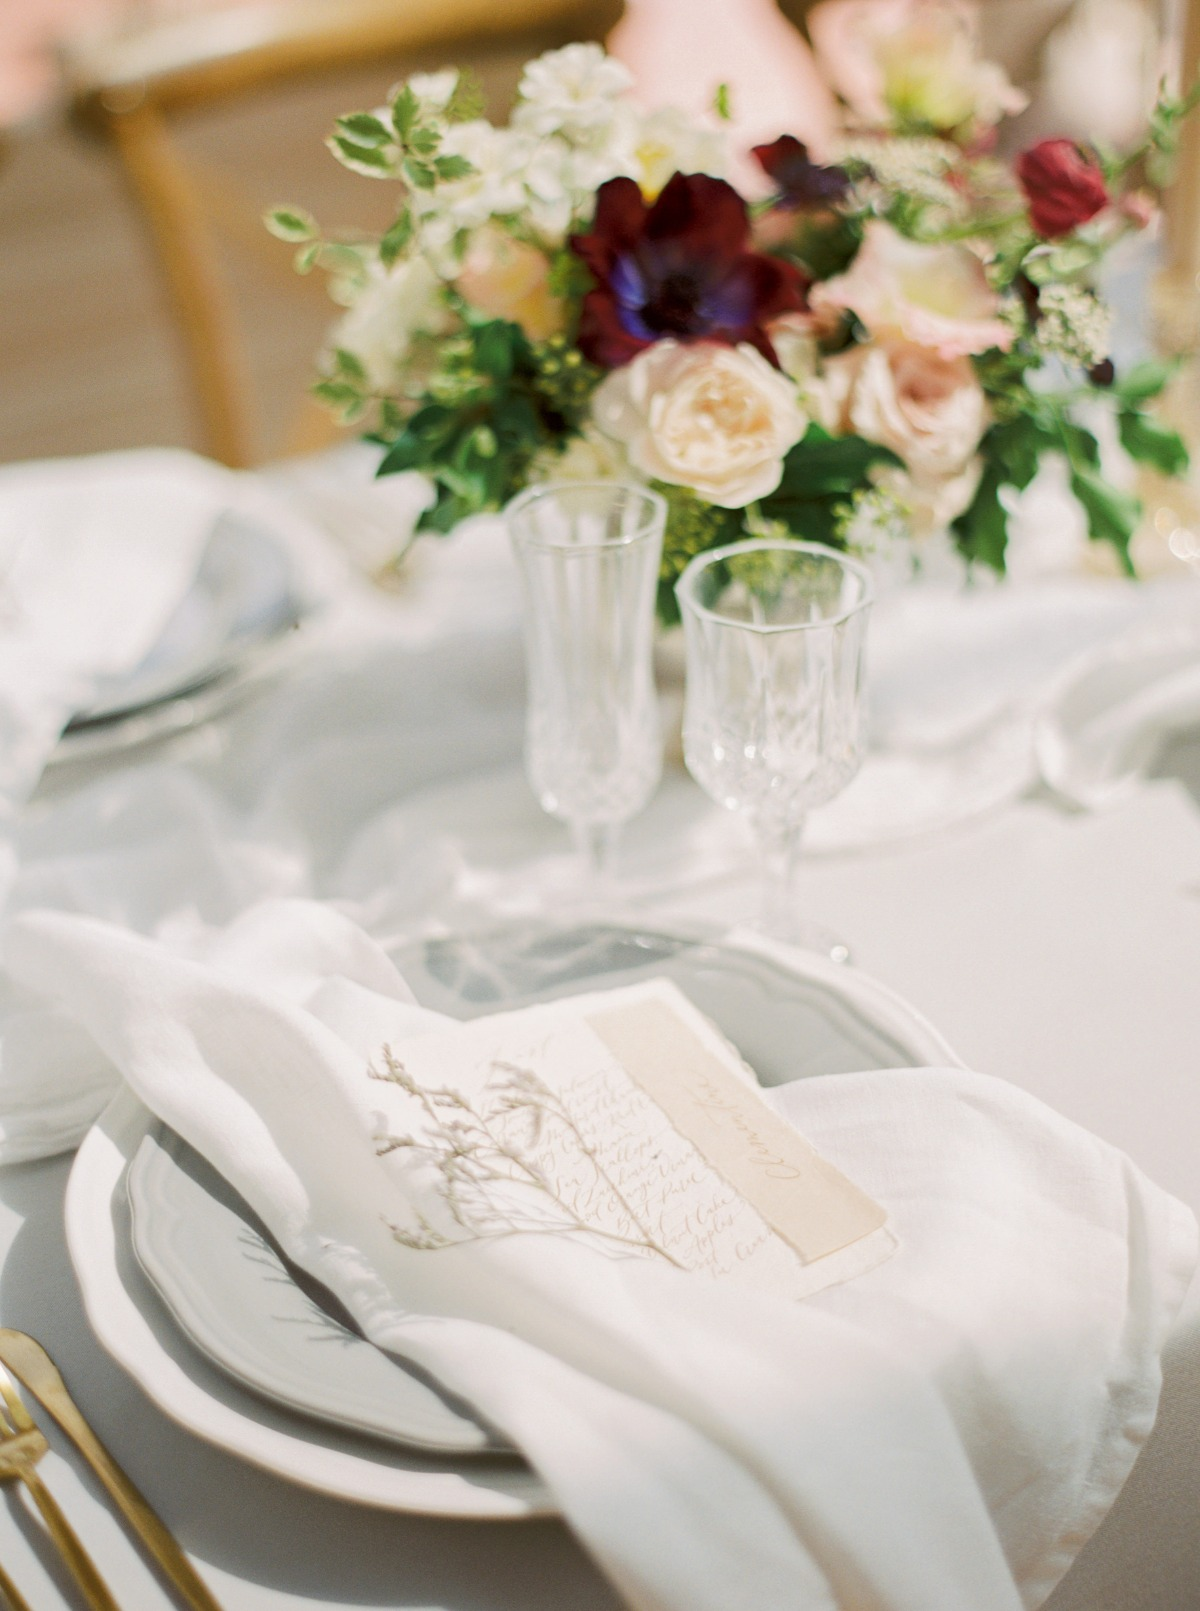 Table decor ideas and design from Ivy & Bleu Events